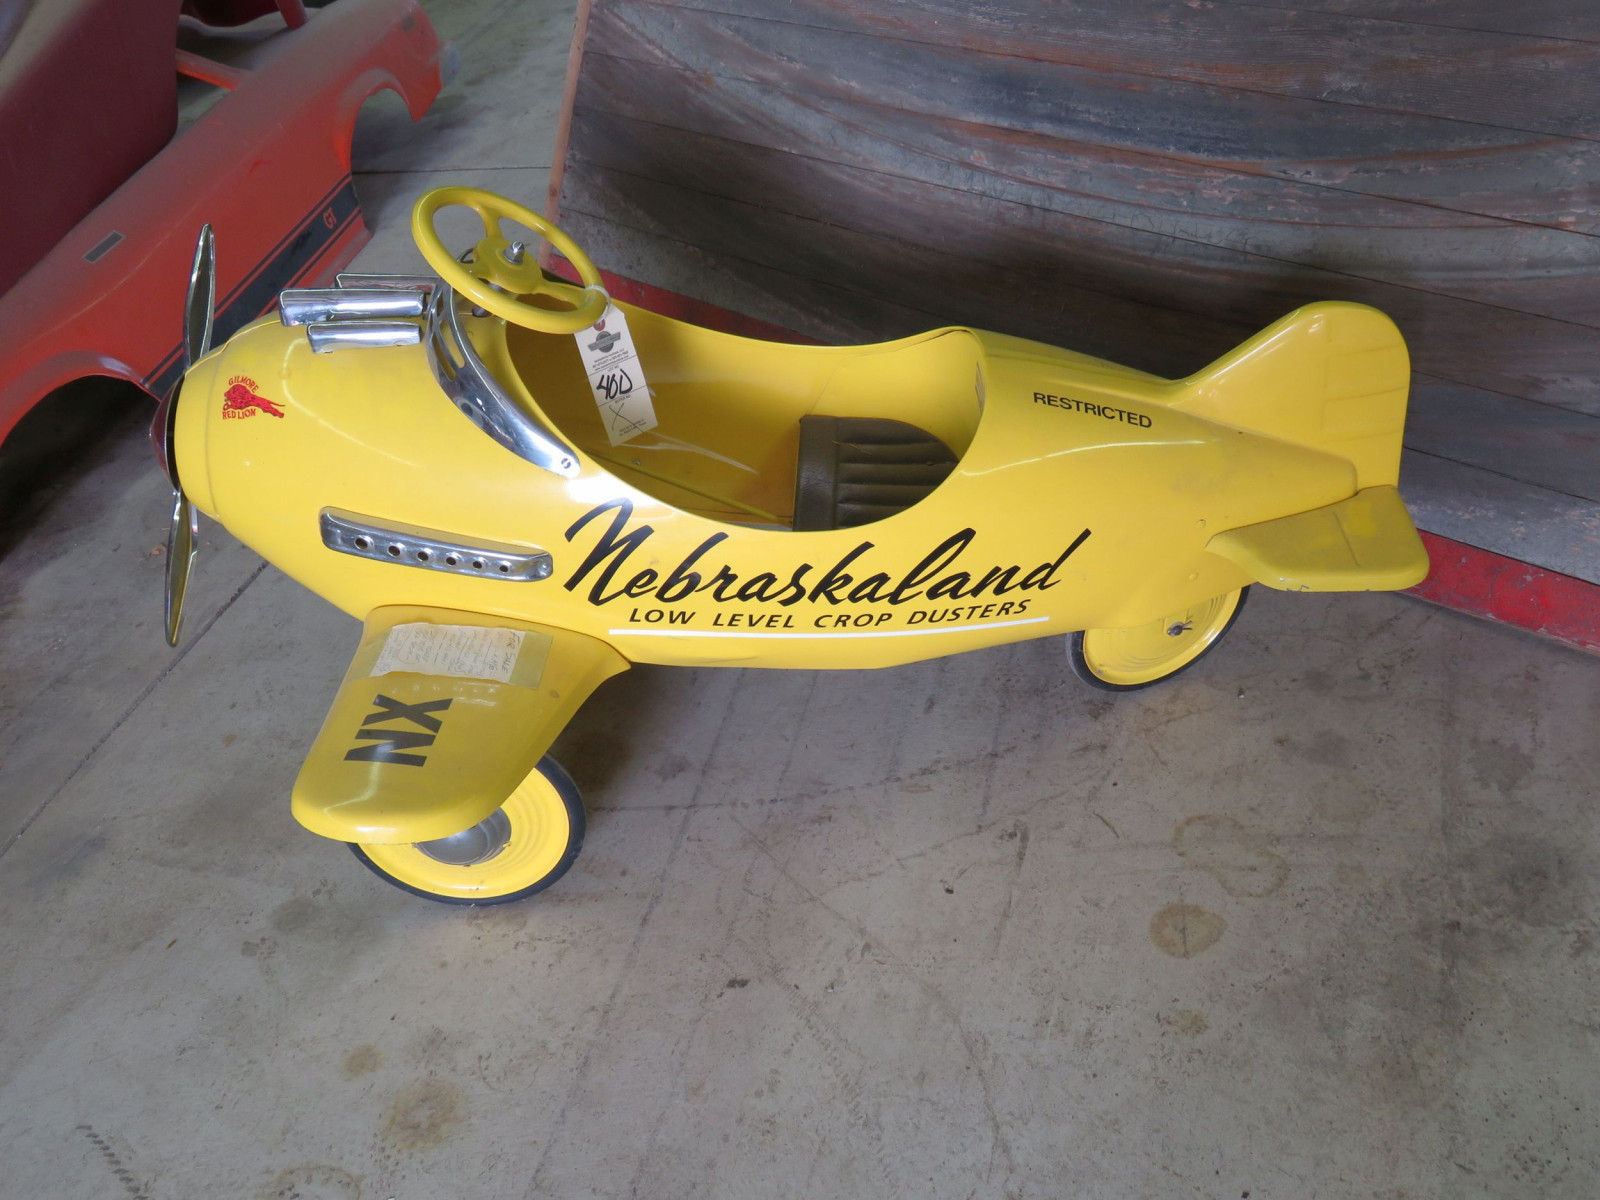 Reproduction Airplane Pedal Car - Image 5